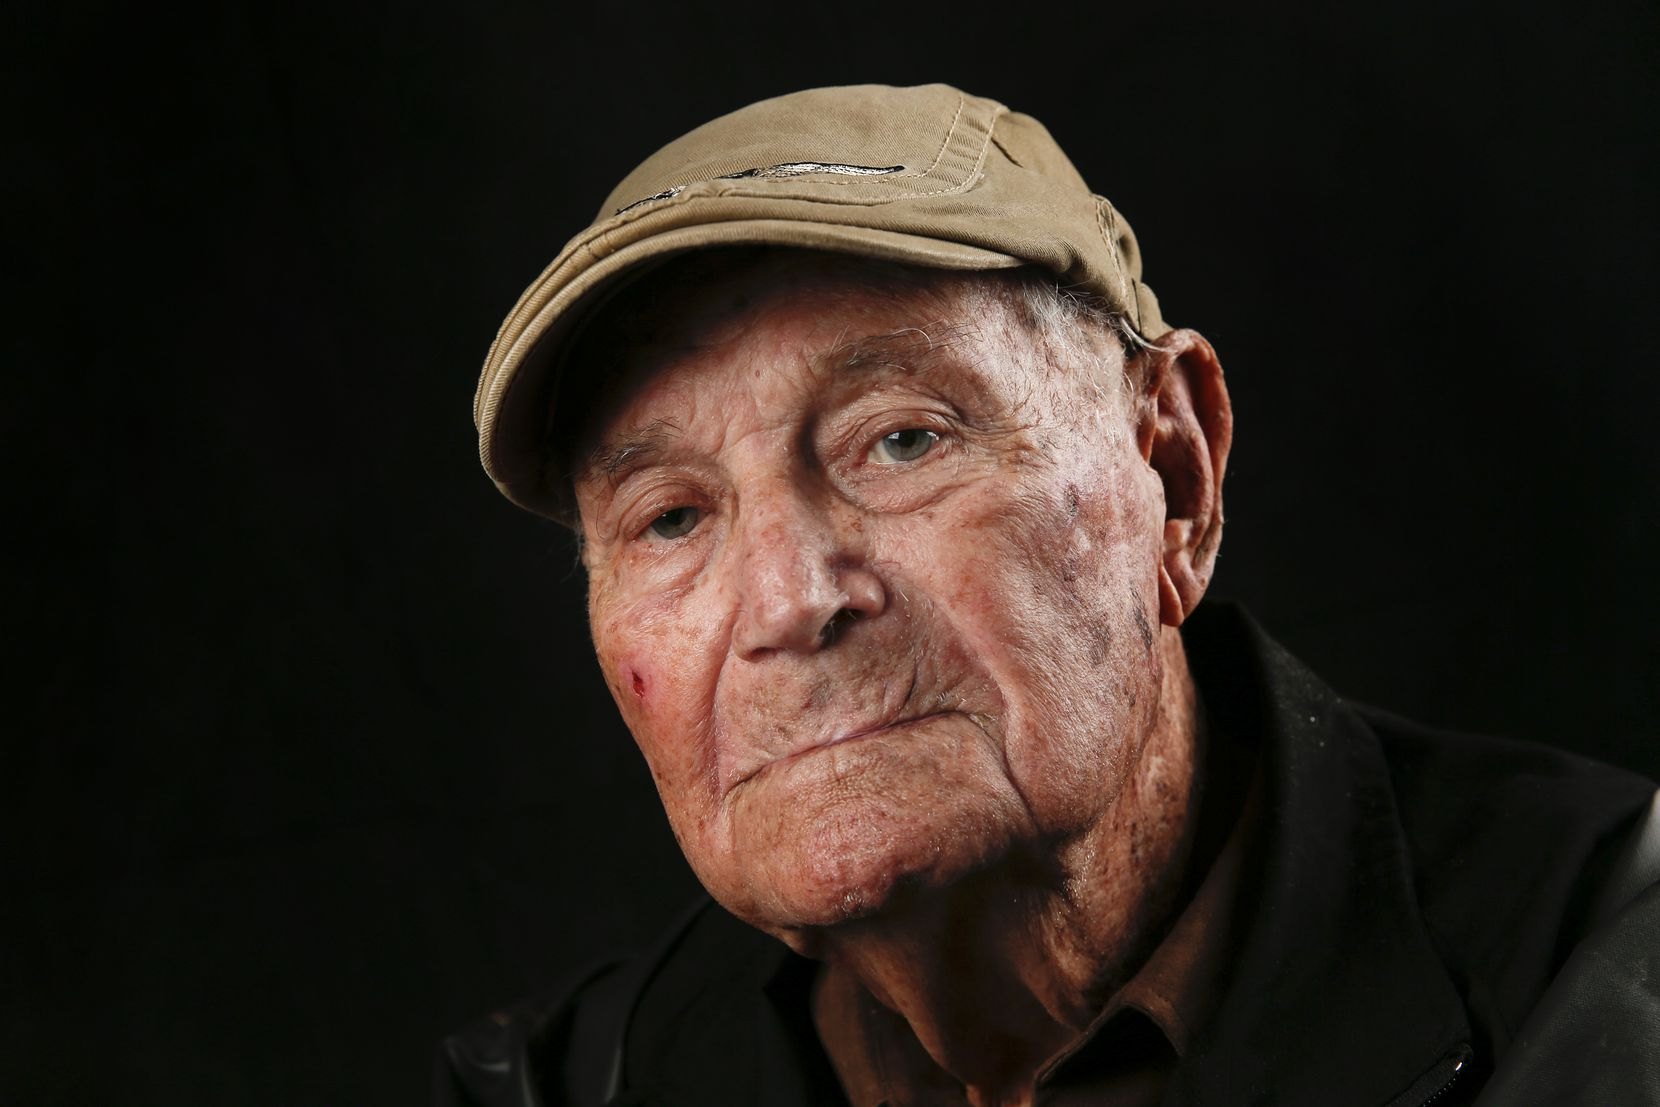 Jack Ogilvie, 96, of Dallas, who served as a P-39 Airacobra and P-47 Thunderbolt pilot in World War II, is photographed during the Wings Over Dallas Airshow on Saturday, Oct. 26, 2019 in Dallas.